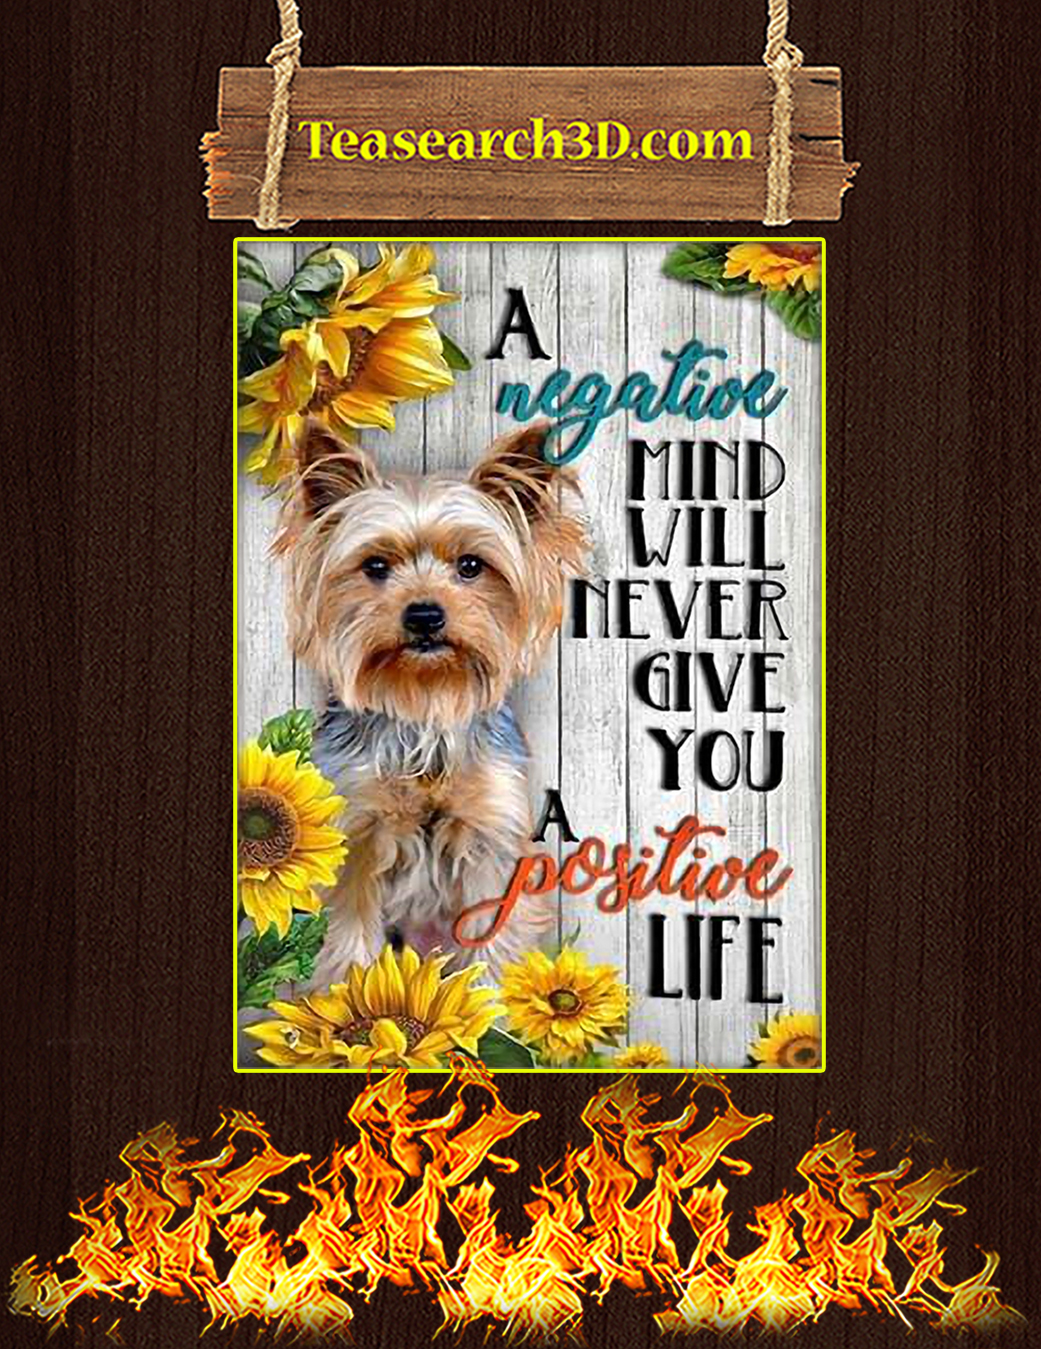 Yorkshire A negative mind will never give you a positive life poster A1